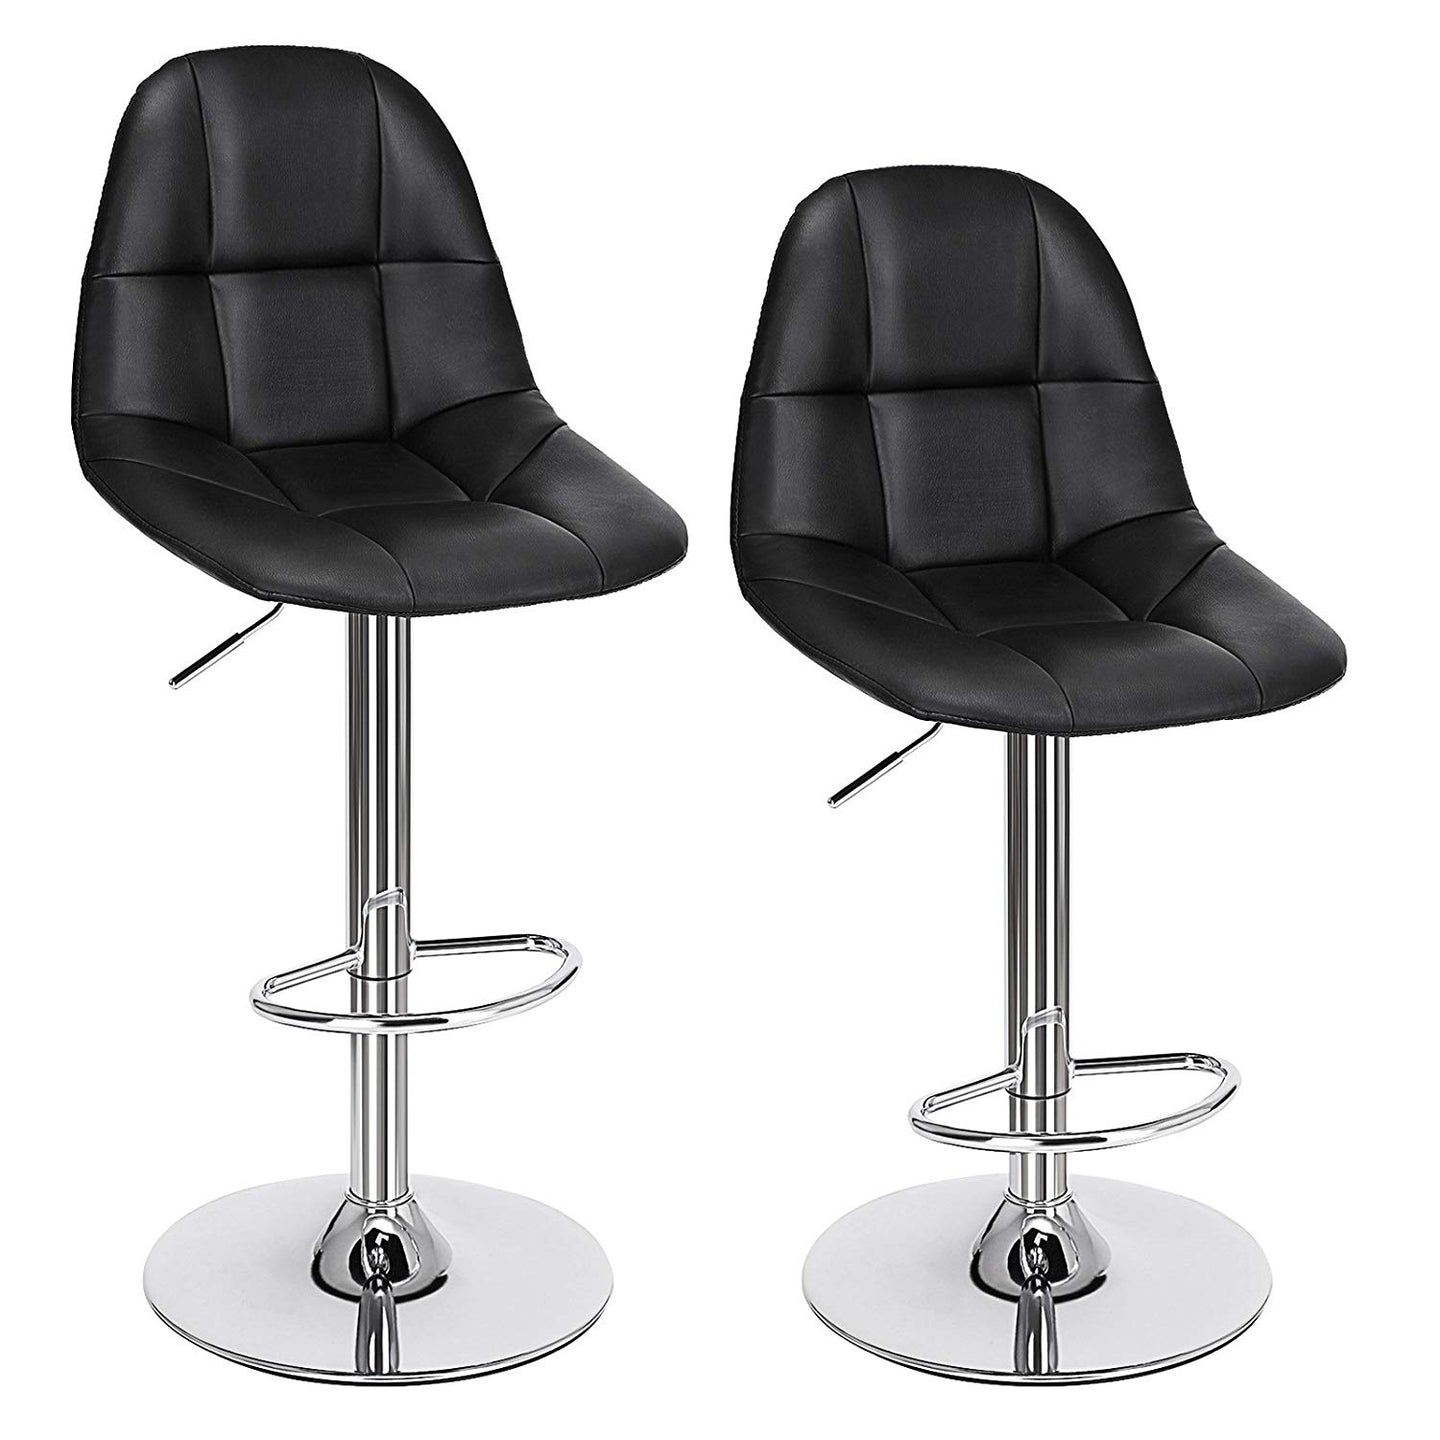 Songmics Adjustable Swivel Bar Stools Set of 2 Black ULJB68B